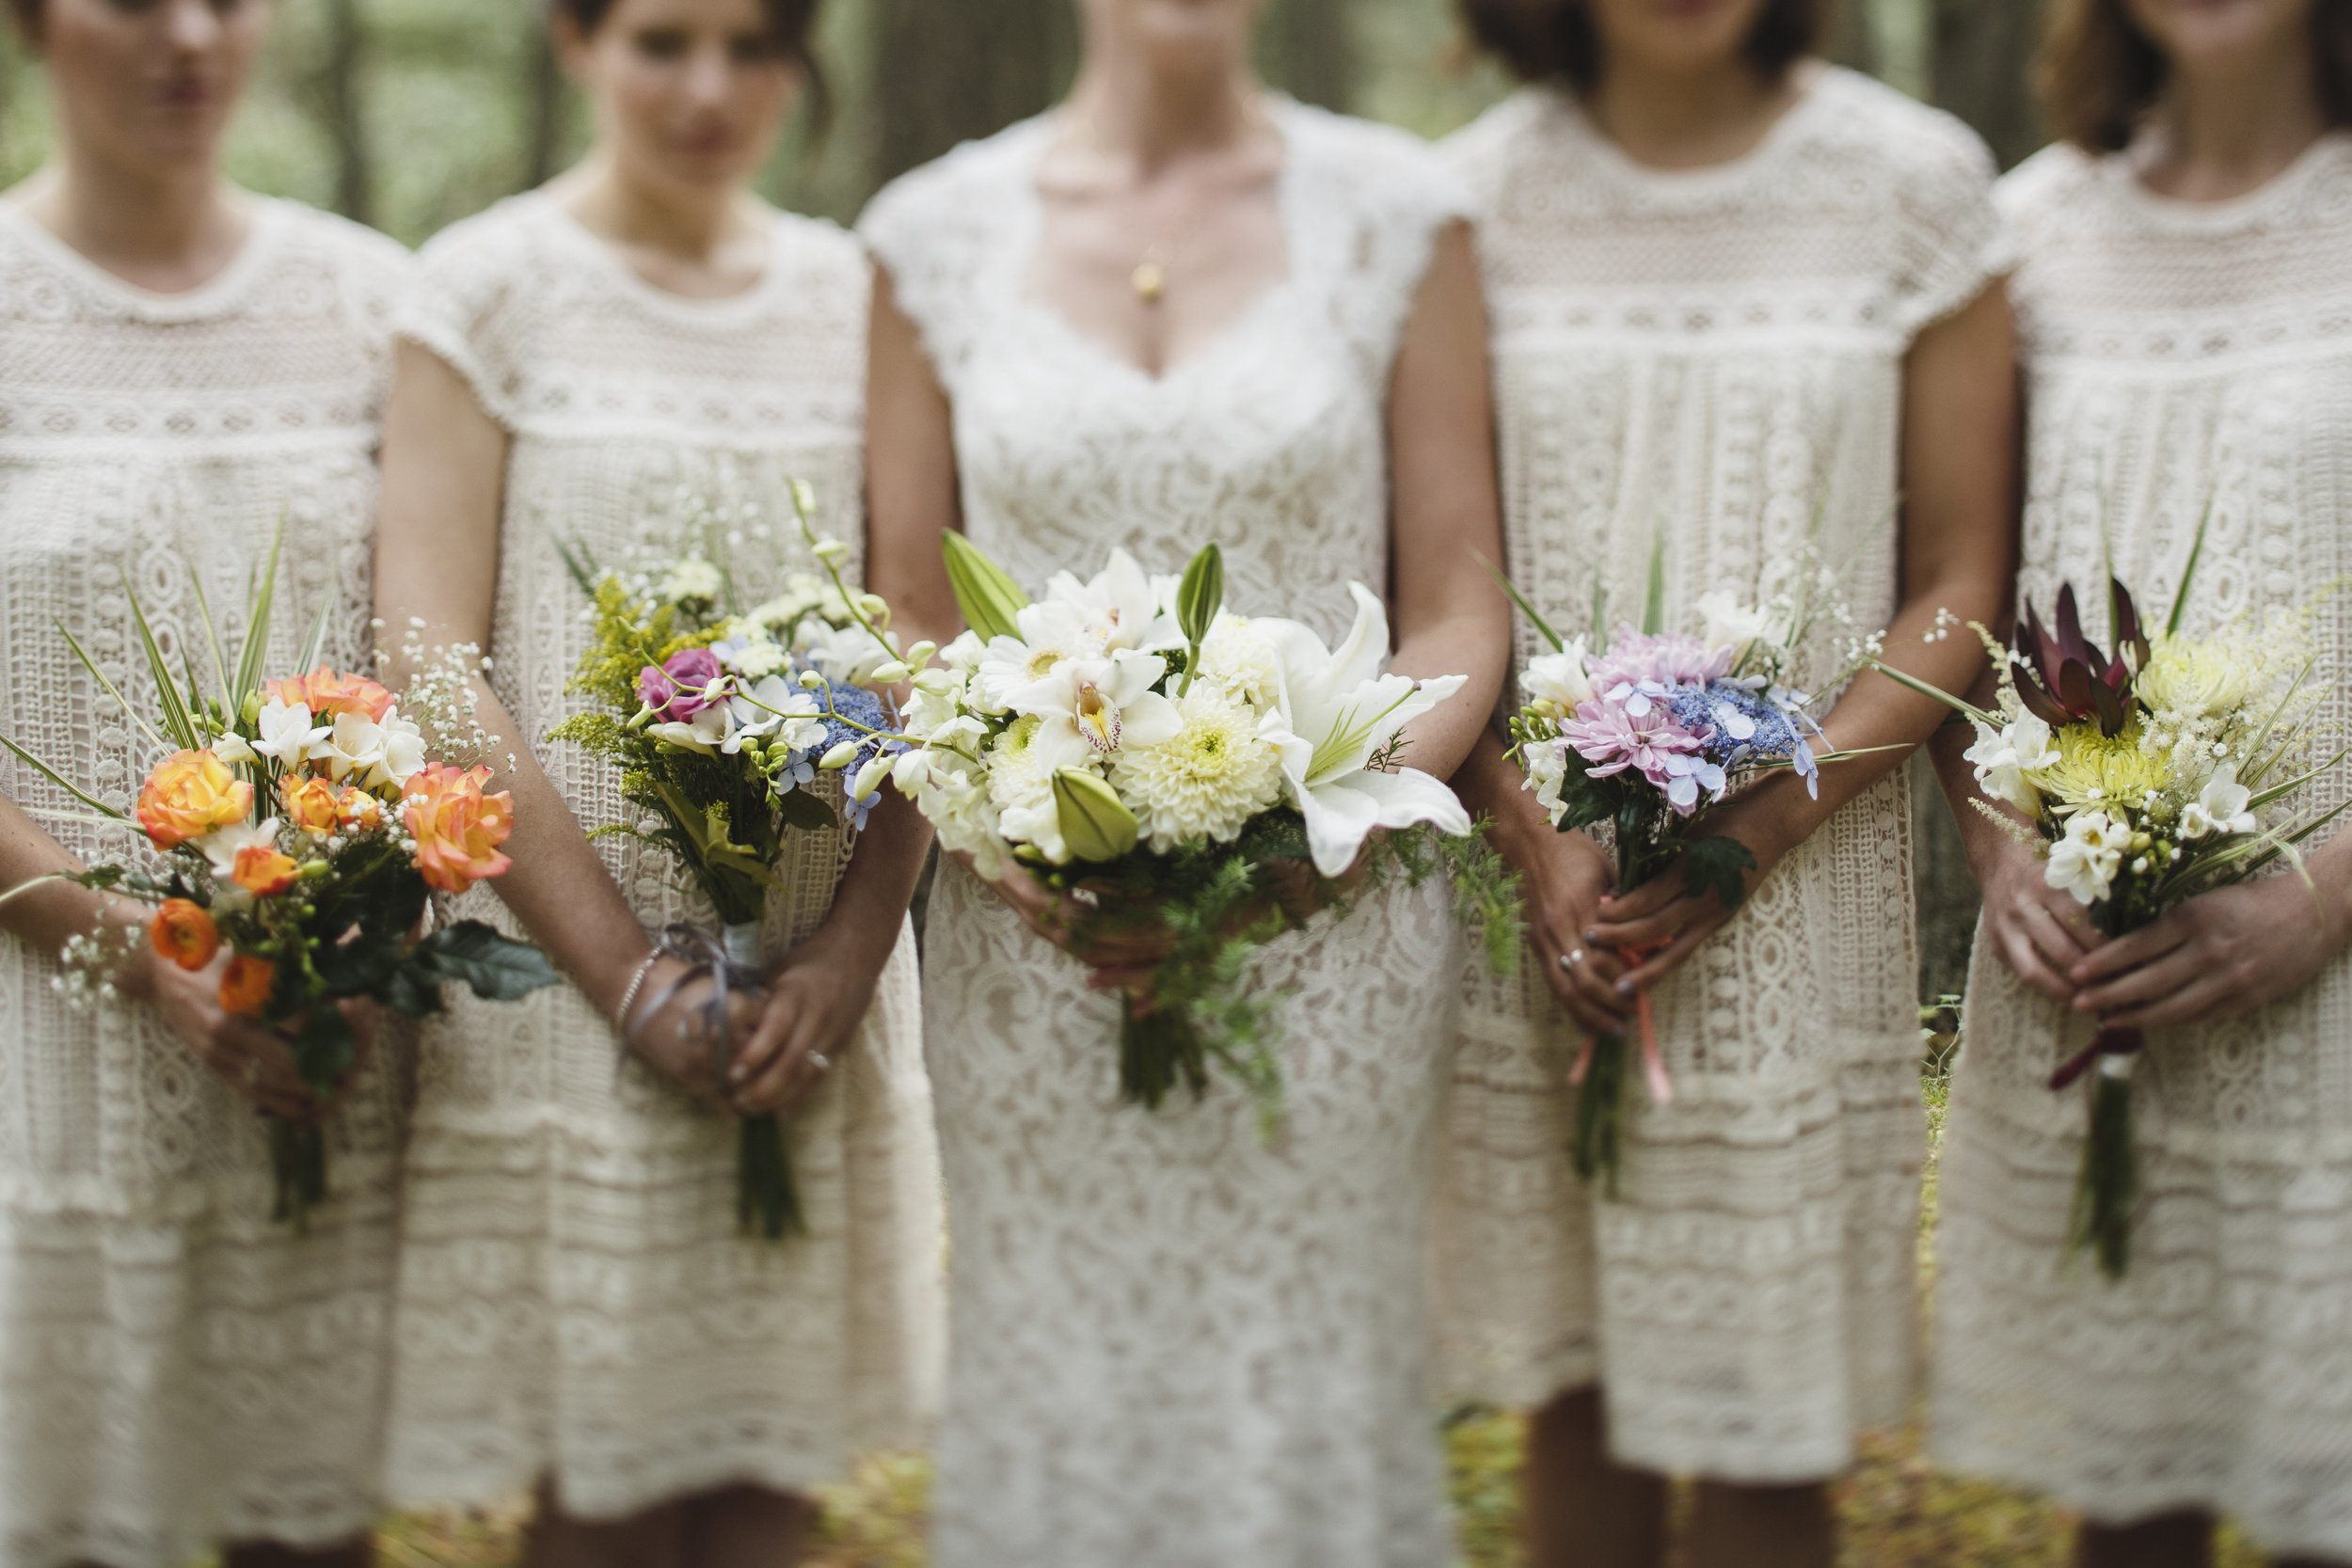 The Bride and her bridesmaid holding flowers Forest wedding at King Francis Park Vancouver Island